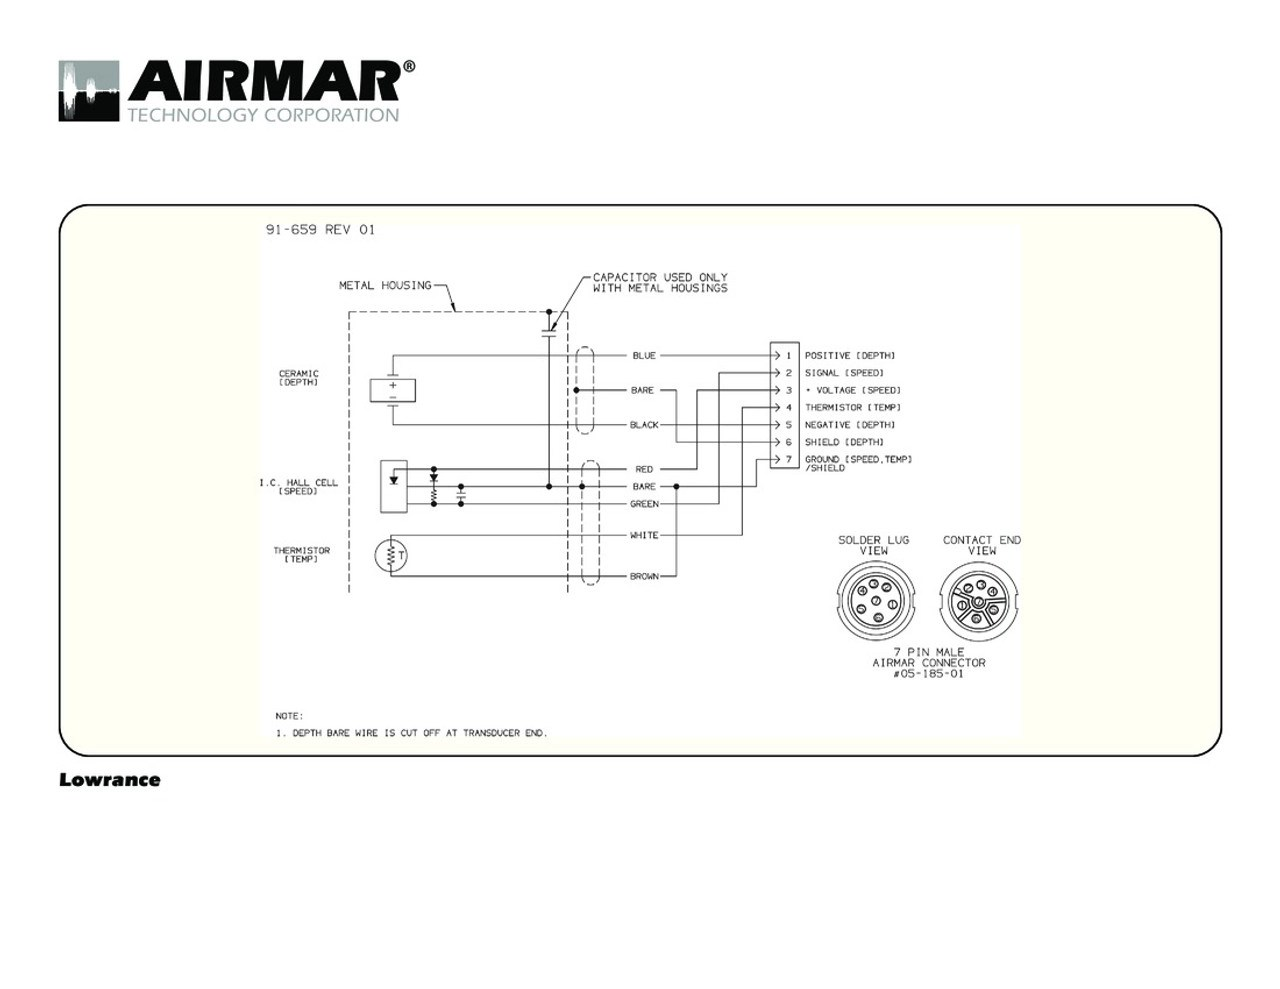 hight resolution of airmar wiring diagram lowrance 7 pin d s t blue bottle marinedepth